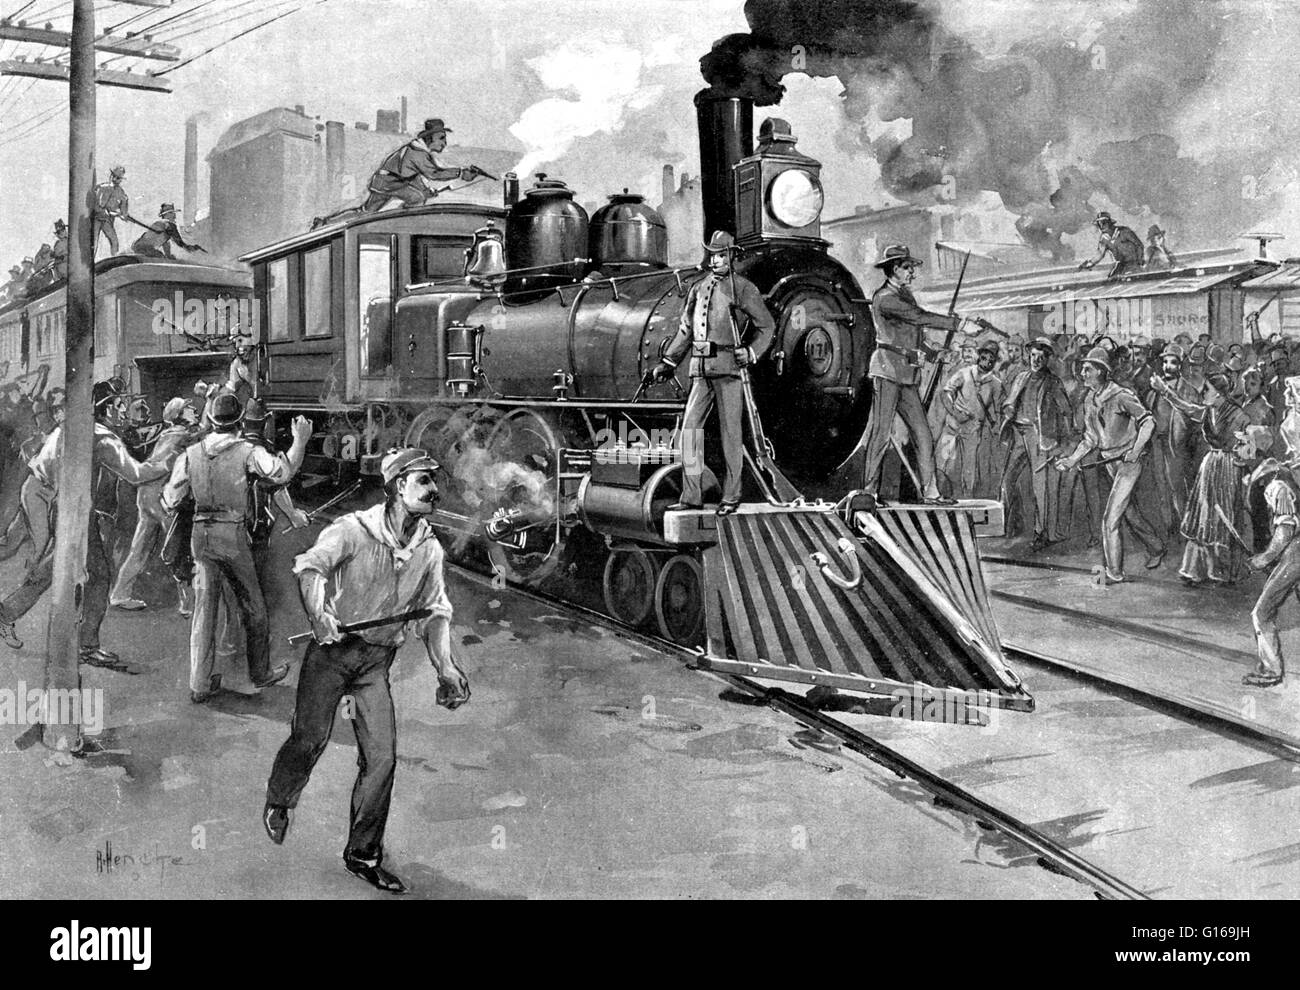 The Pullman Strike was a nationwide conflict in the summer of 1894 between the new American Railway Union (ARU) Stock Photo